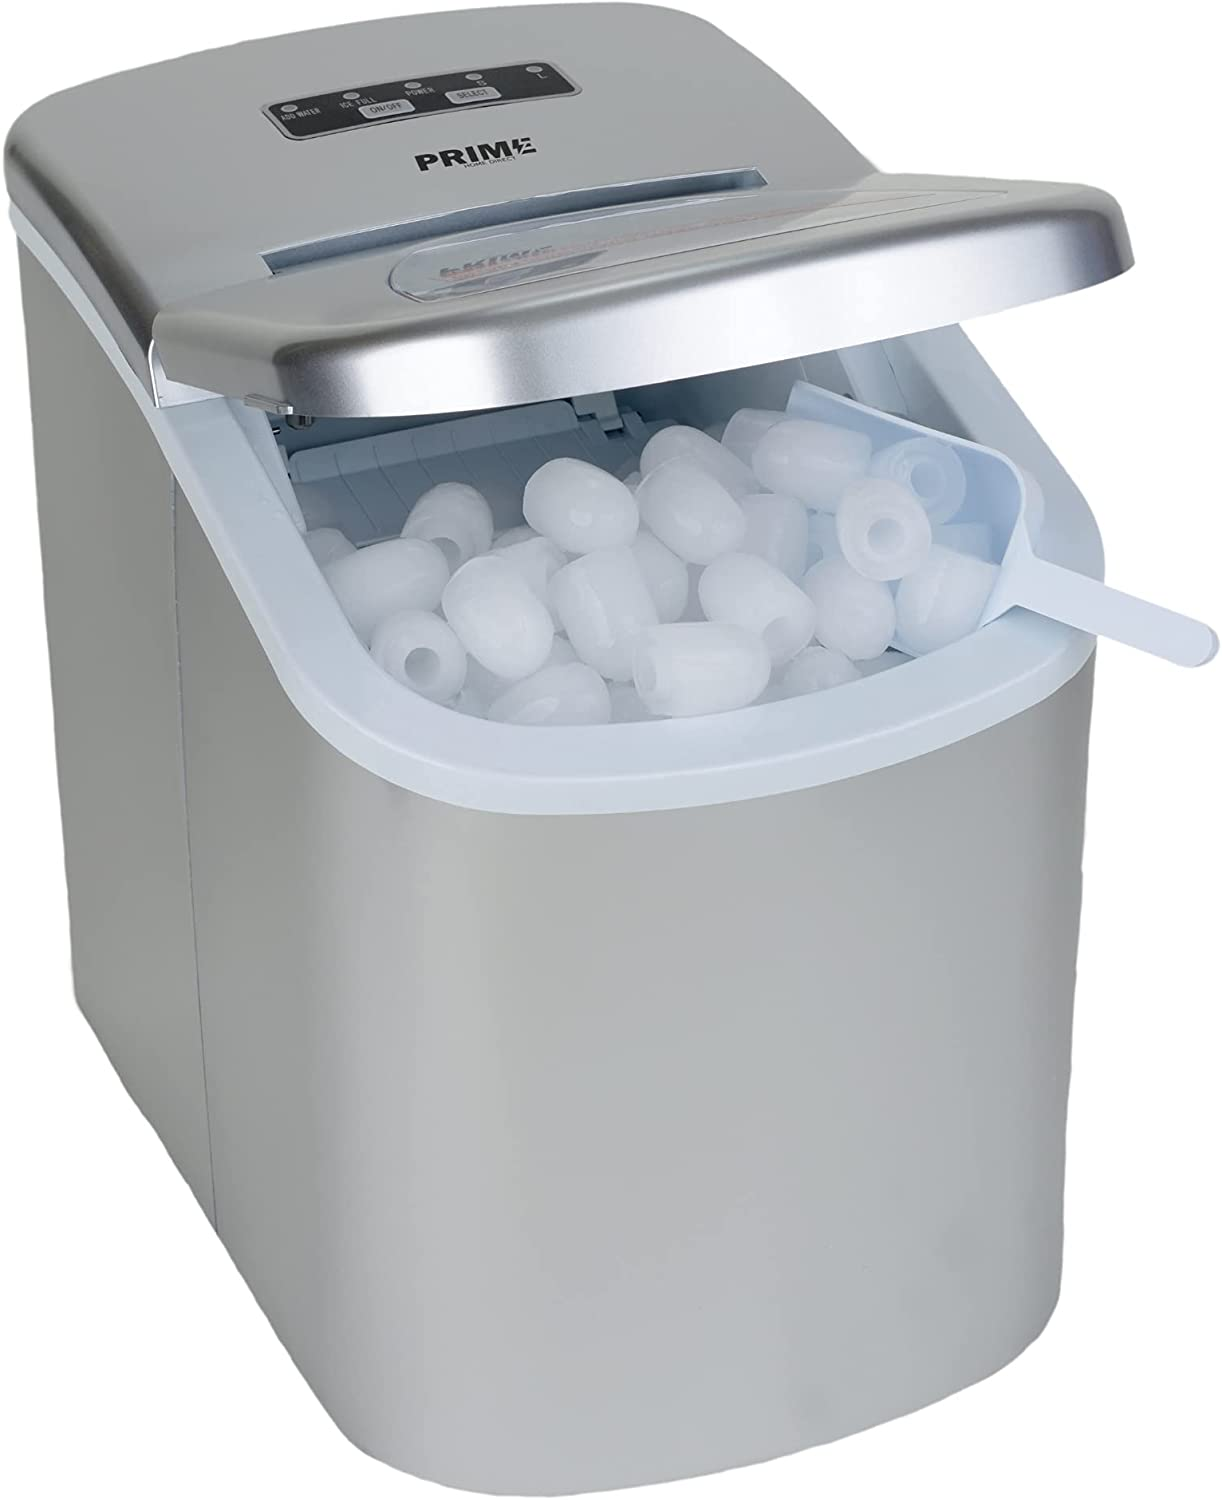 Prime Home Direct Ice Makers Countertop